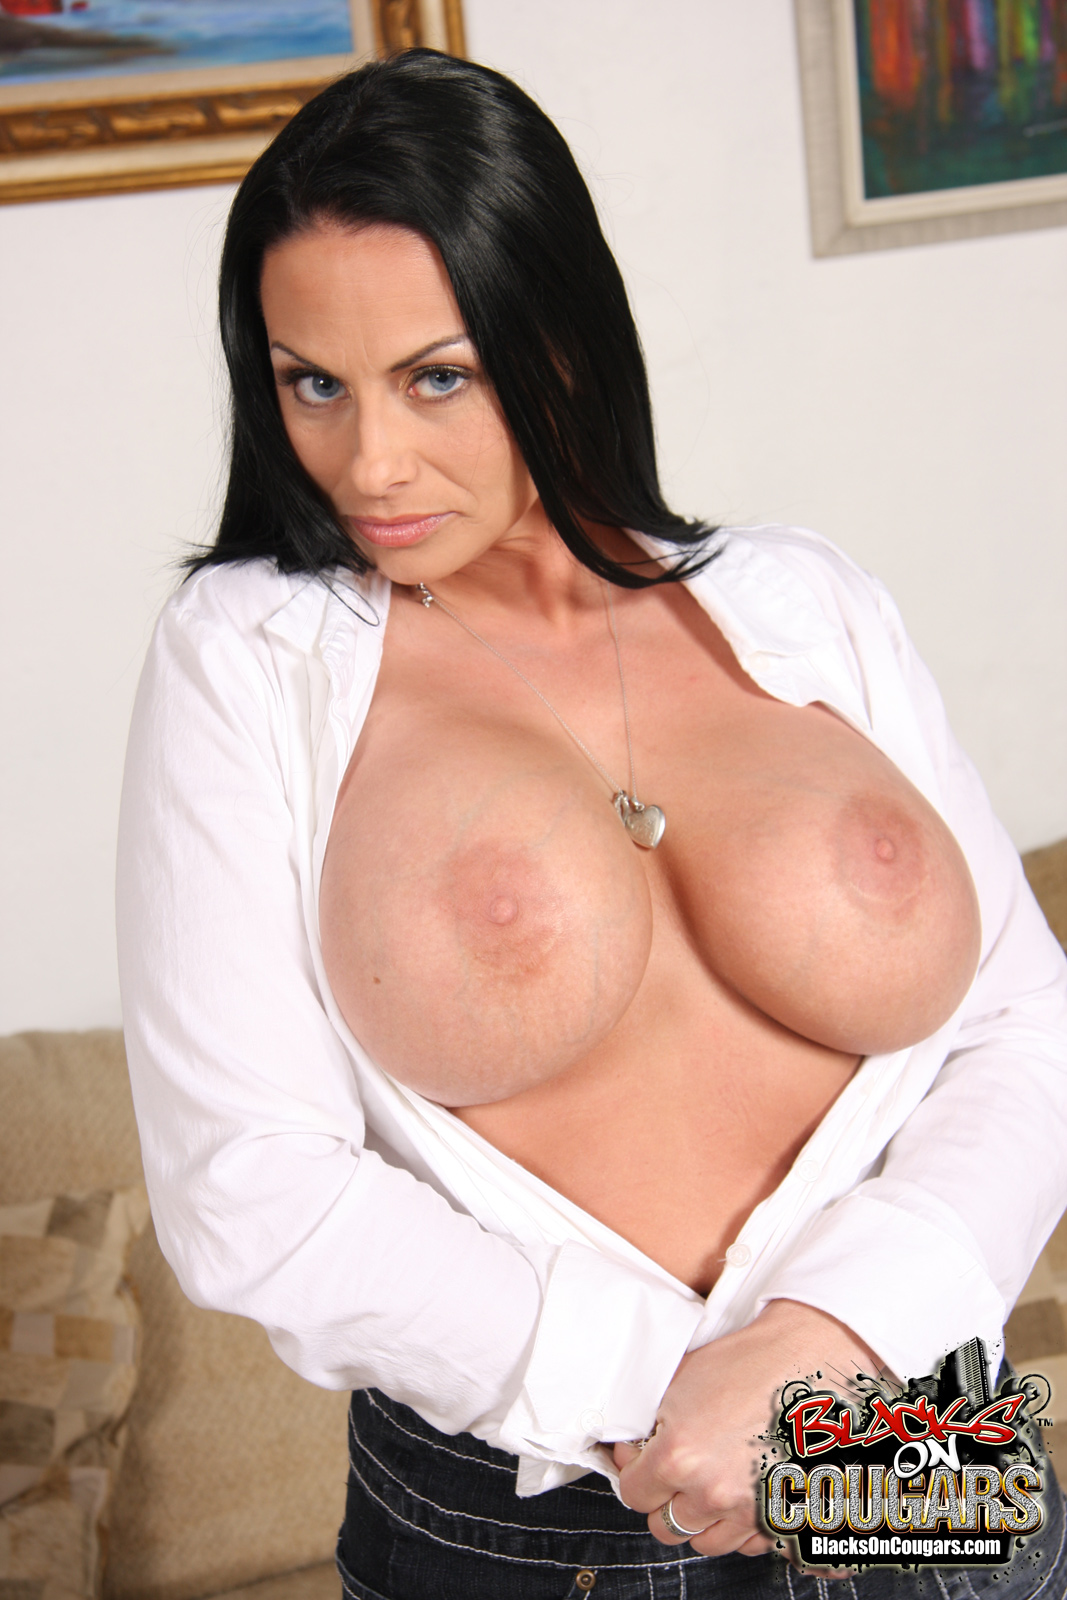 Big tits in white blouse